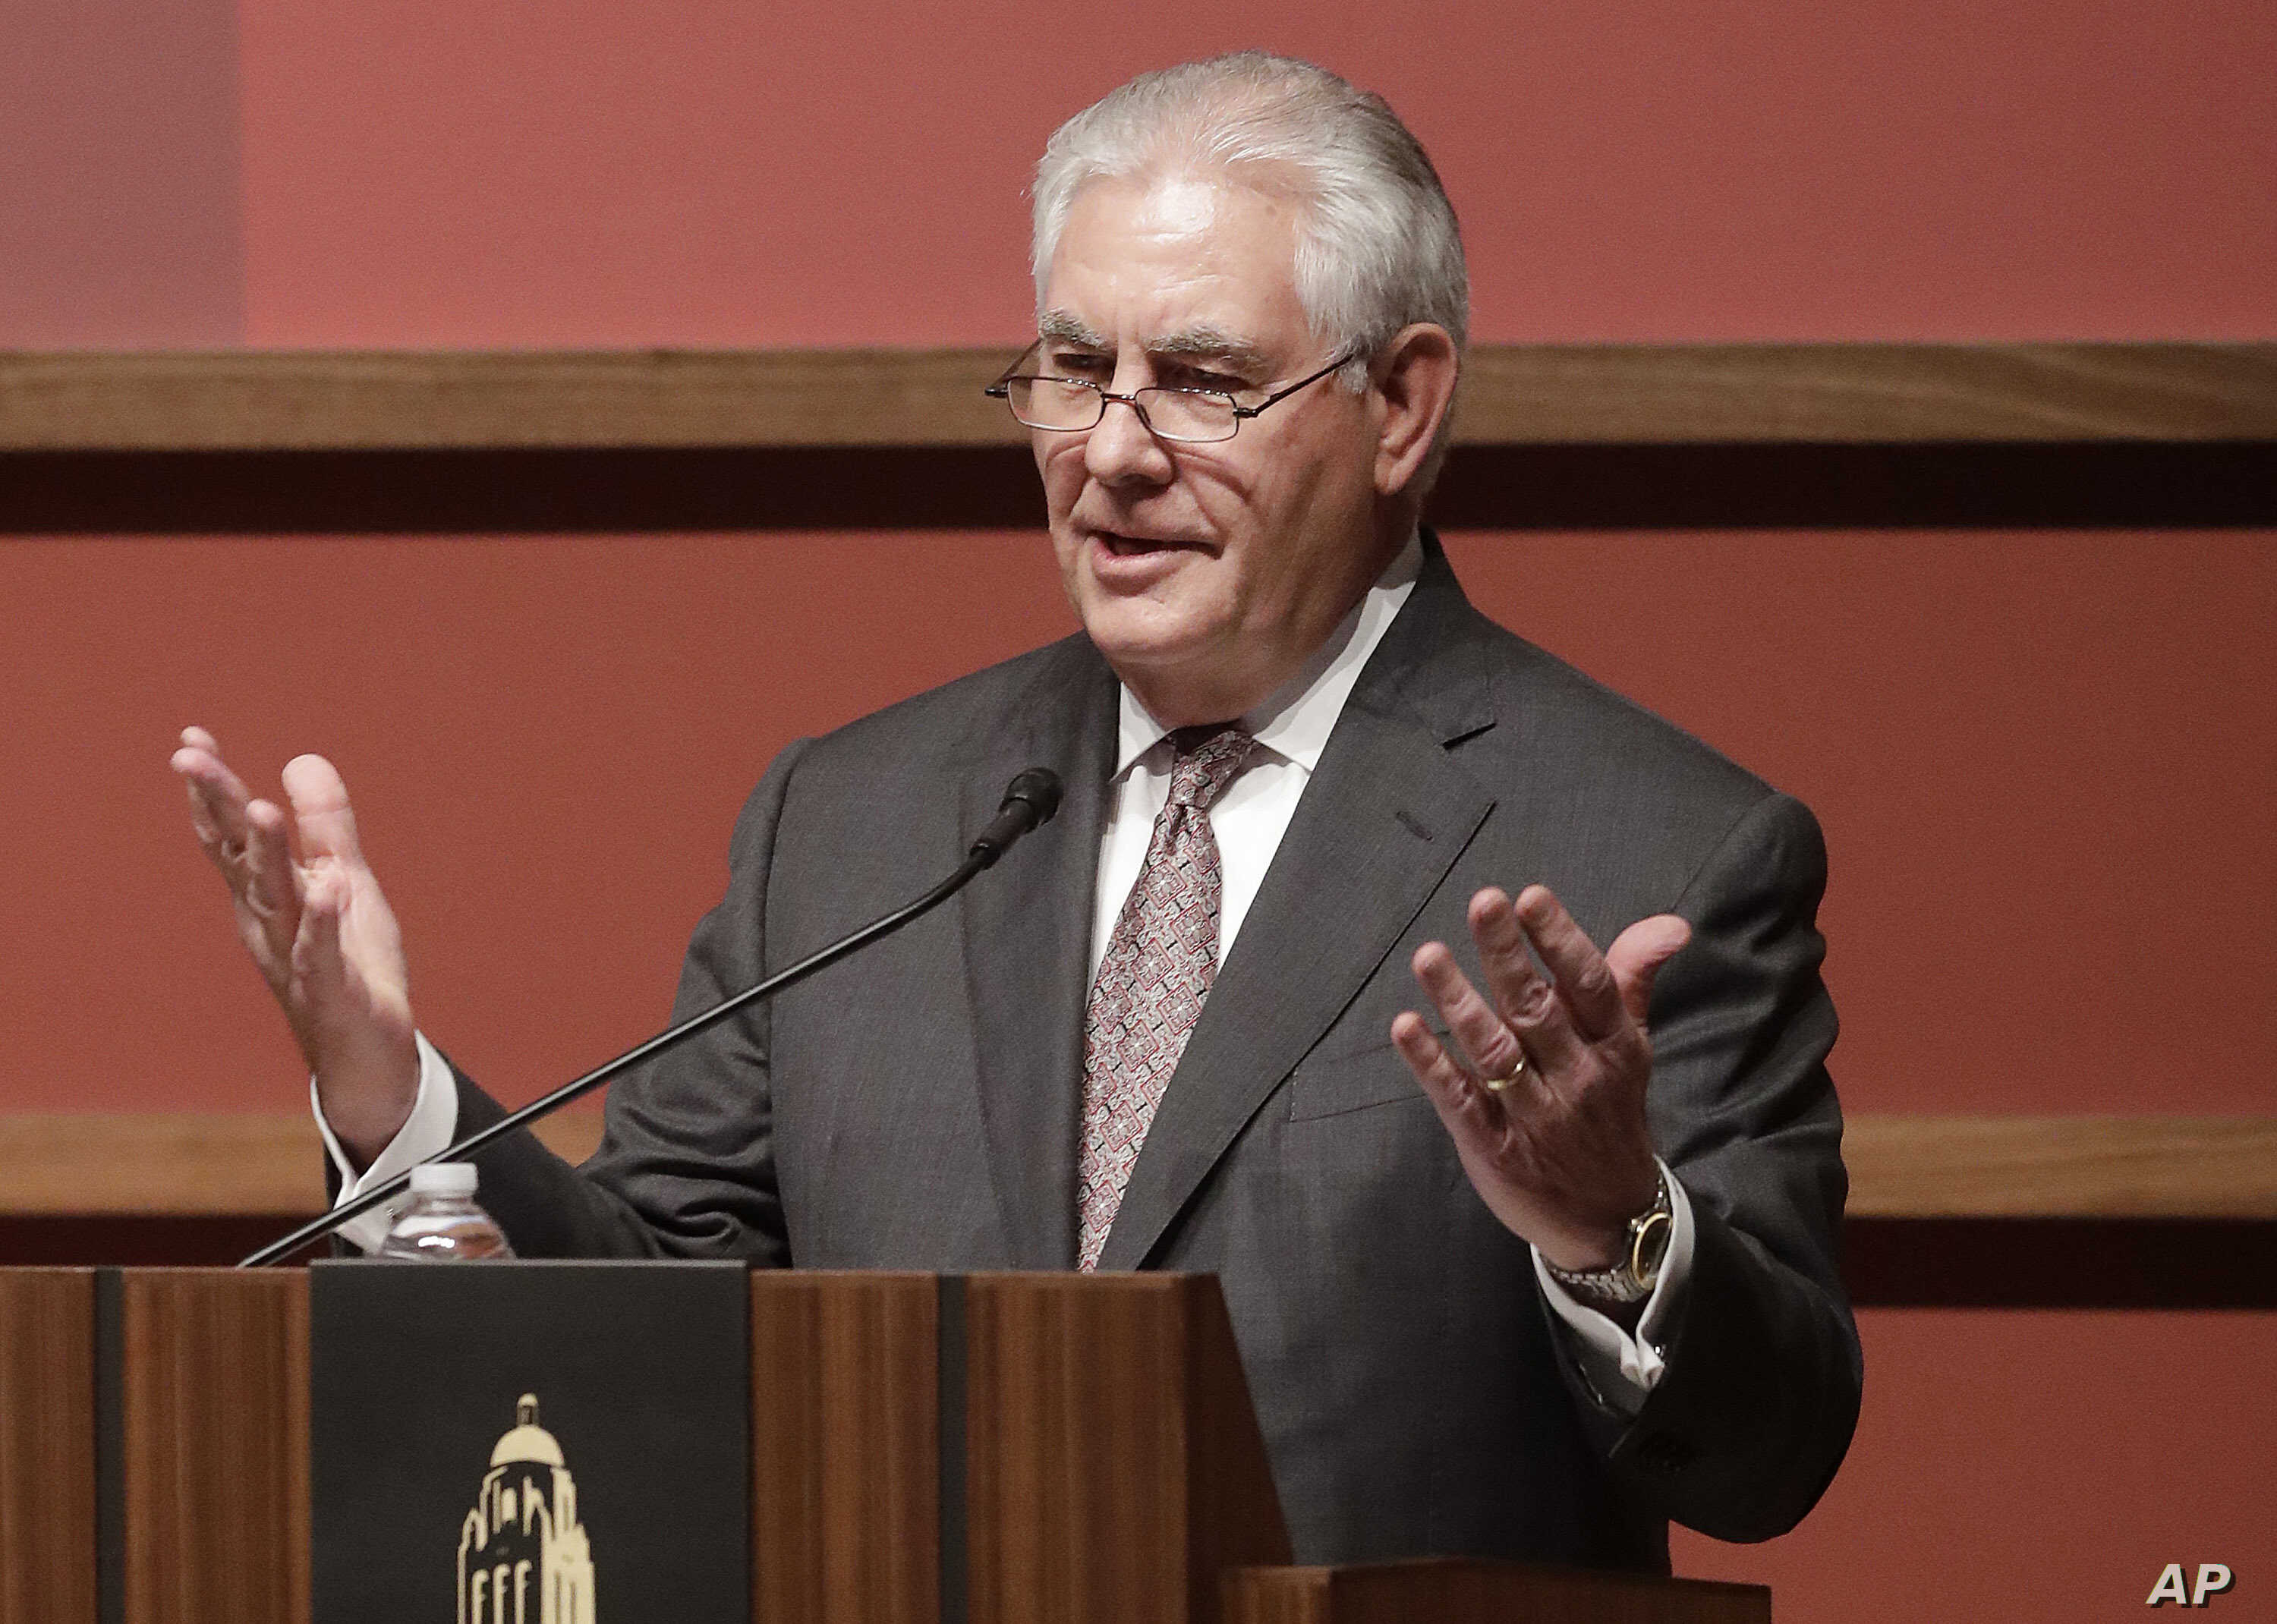 U.S. Secretary of State Rex Tillerson speaks to the Hoover Institution at Stanford University in Stanford, Calif., Wednesday, Jan. 17, 2018.